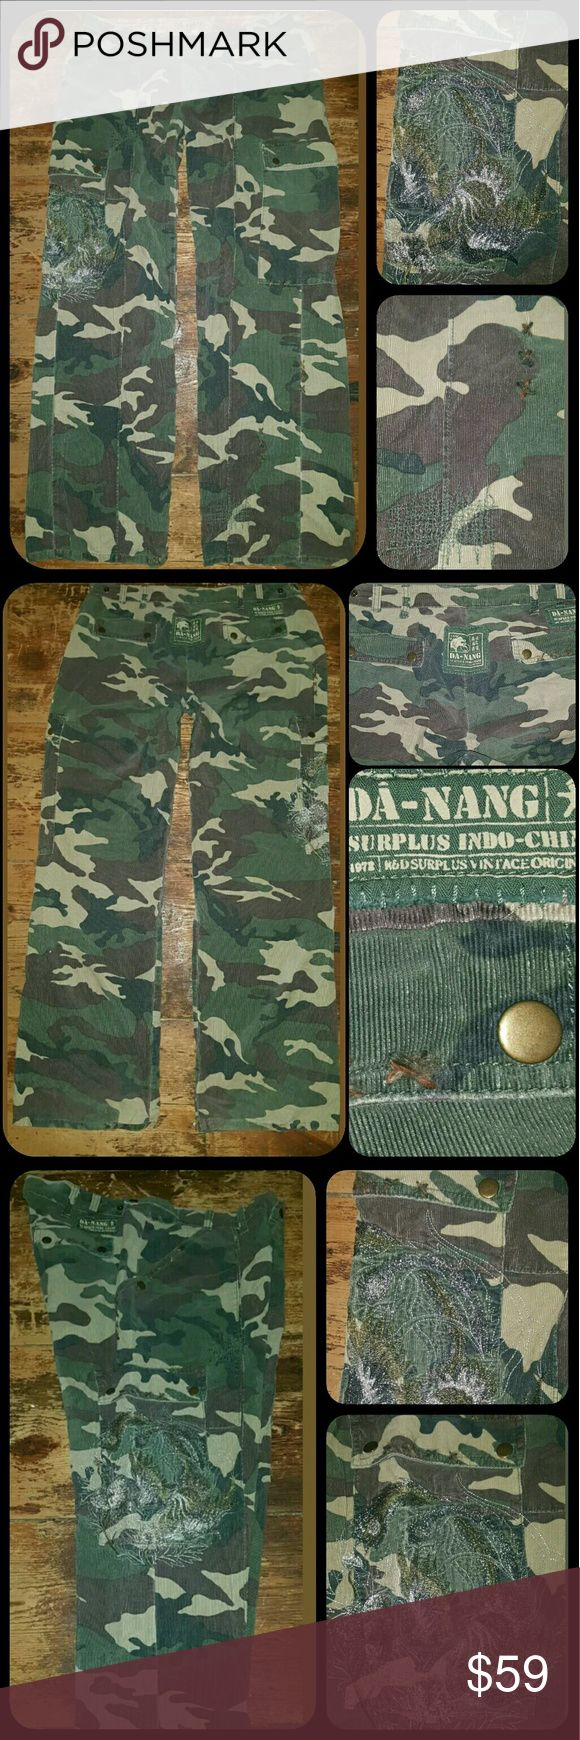 Danang Camo Cargo Embroidered Rumpled Pants very shabby chic AF!! Has an extended loved in worn in look. Like a true Vtg from the 50s pant would be like! If shabby rumpled clothing is not ur proverbial cup a Joe then this is not 4u! H.the entire DANANG collection really won't be as they source either real Vtg surplus or treat fabric to imitate as such. Super soft corduroy, stitching/repair detail ,abrasions, TAG IS busted up ,lol it is usually quite a bit so when purchased but even more so…